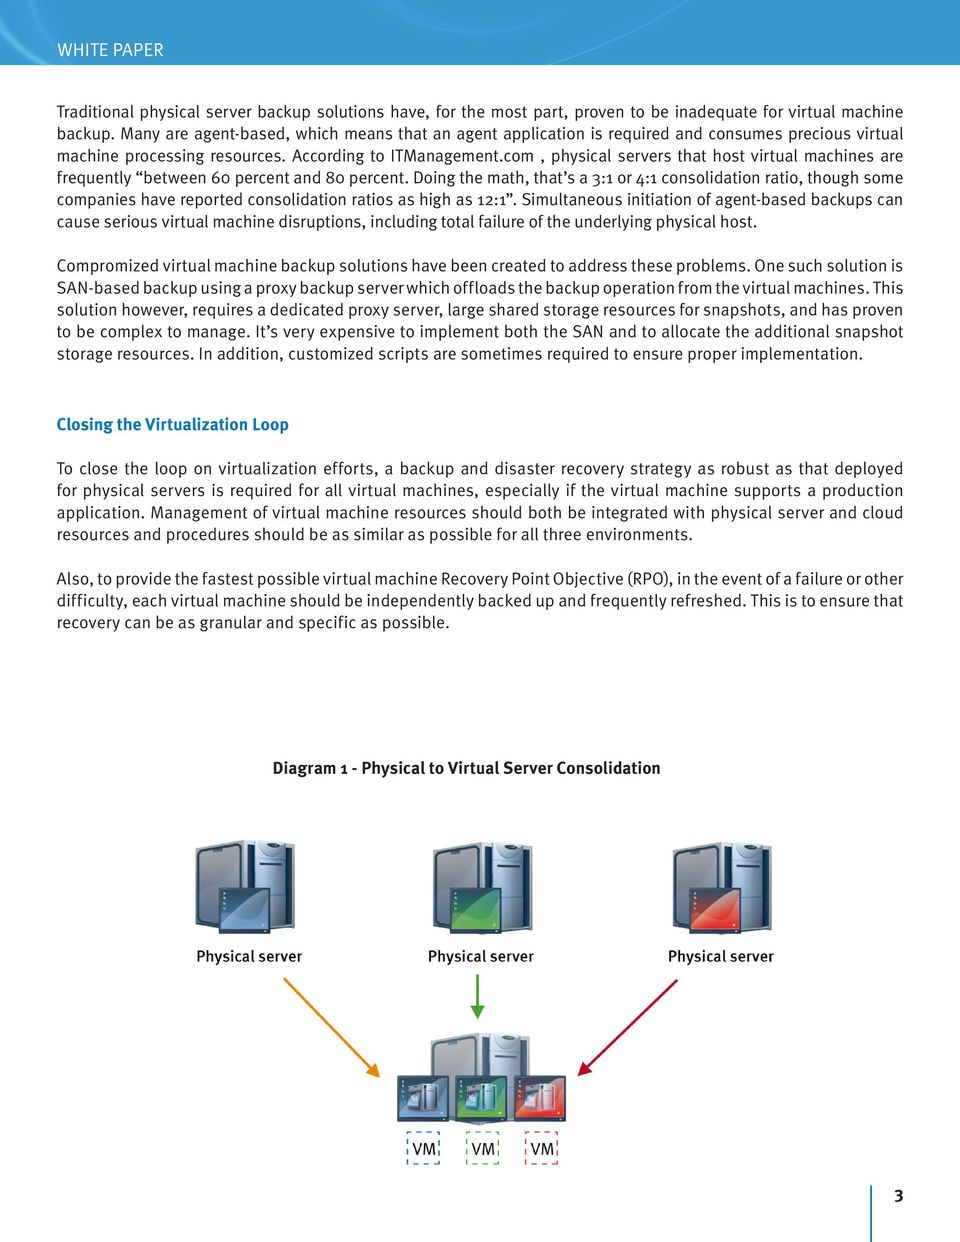 com, physical servers that host virtual machines are frequently between 60 percent and 80 percent.